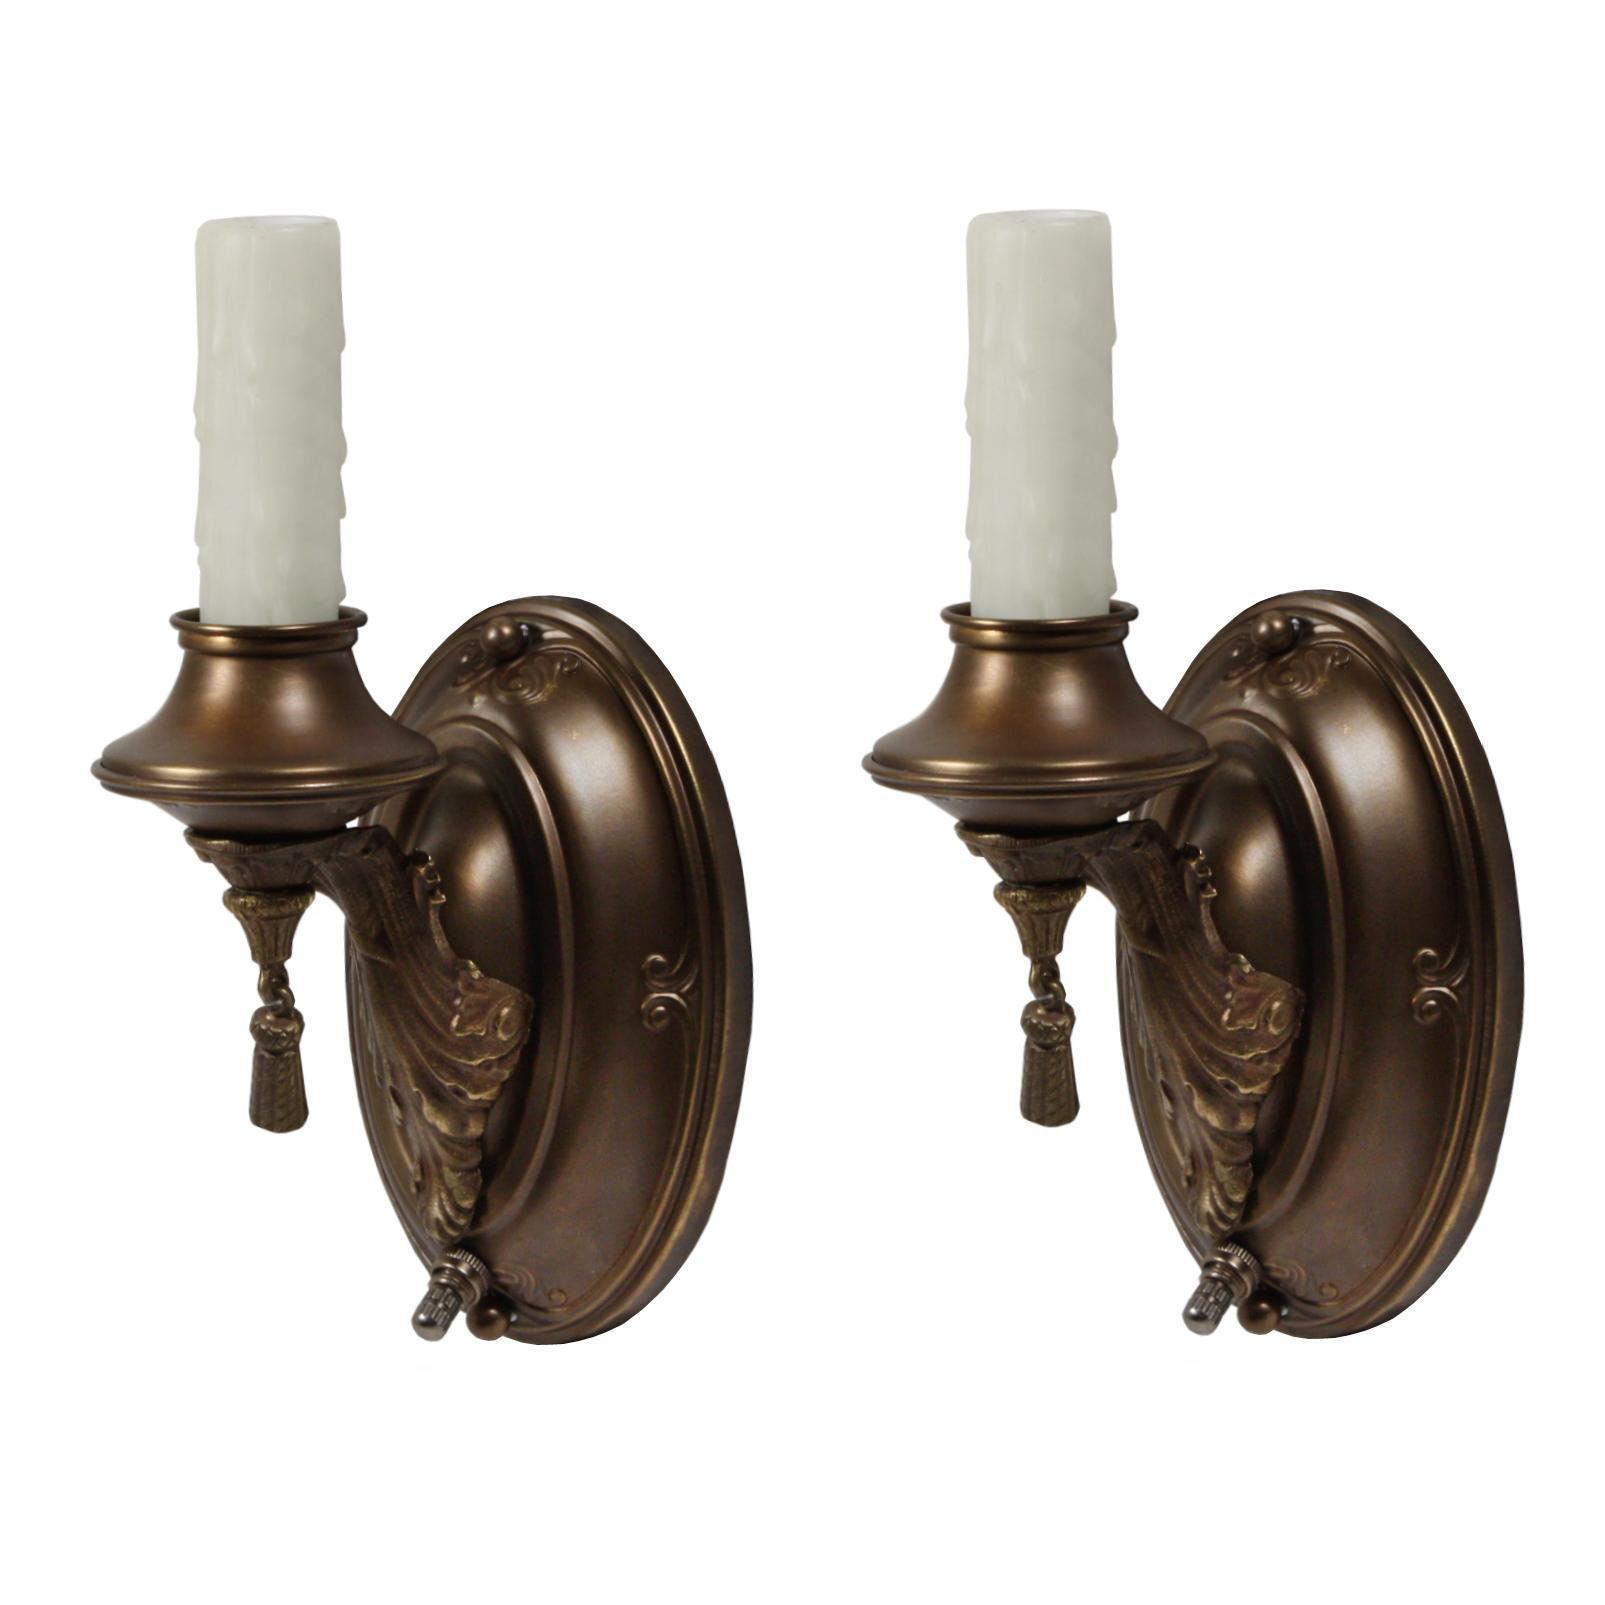 Marvelous Pair of Antique Brass Neoclassical One Arm Sconces, c. 1920